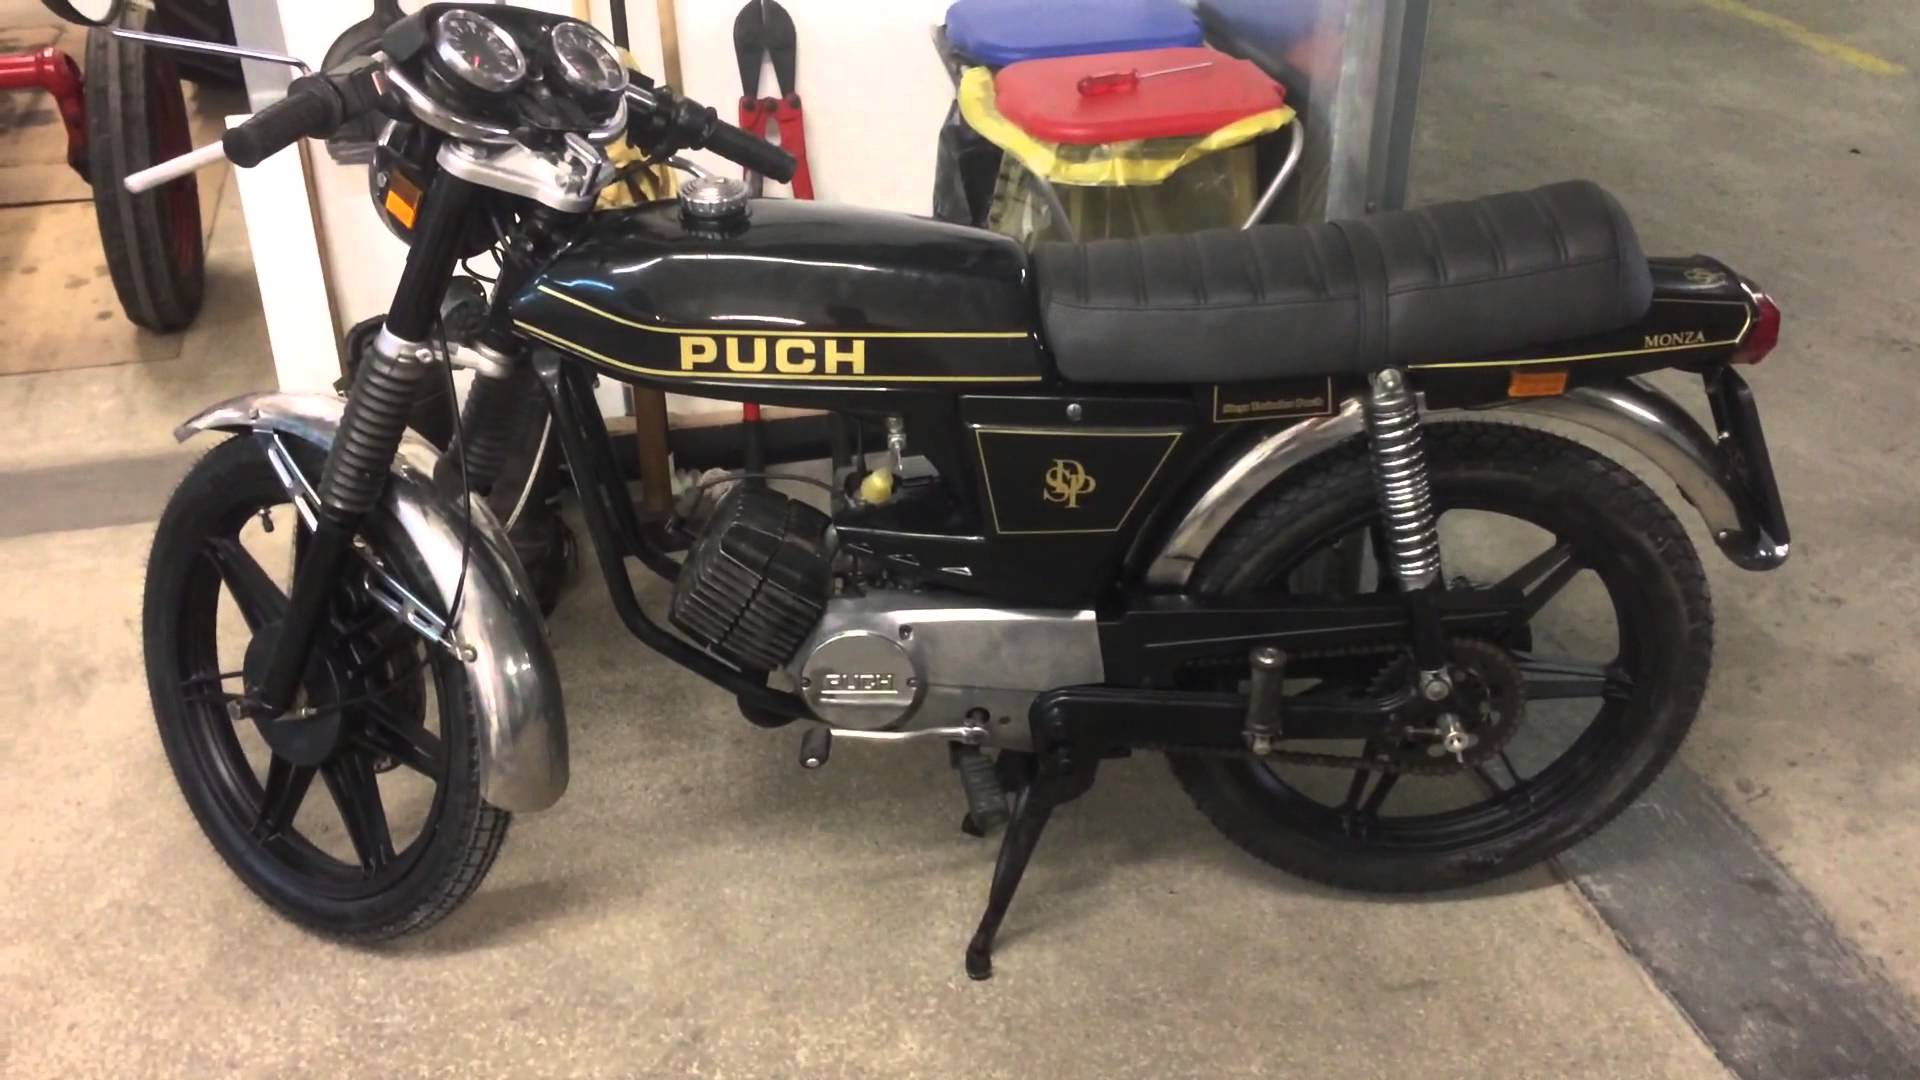 Puch monza photo - 10